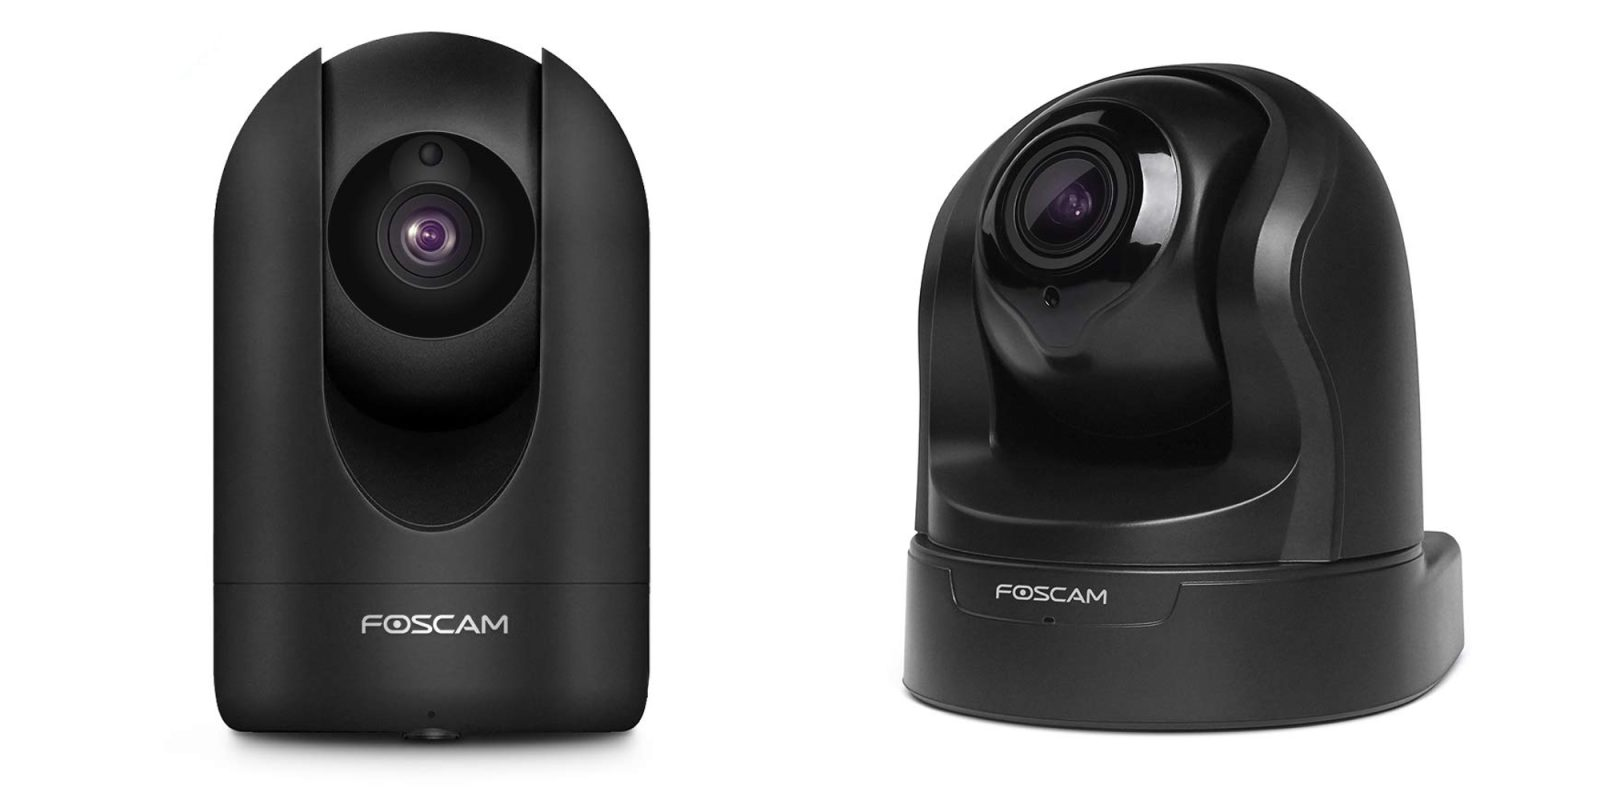 Save 20% on these Foscam 1080p Wi-Fi-enabled Pan/Tilt